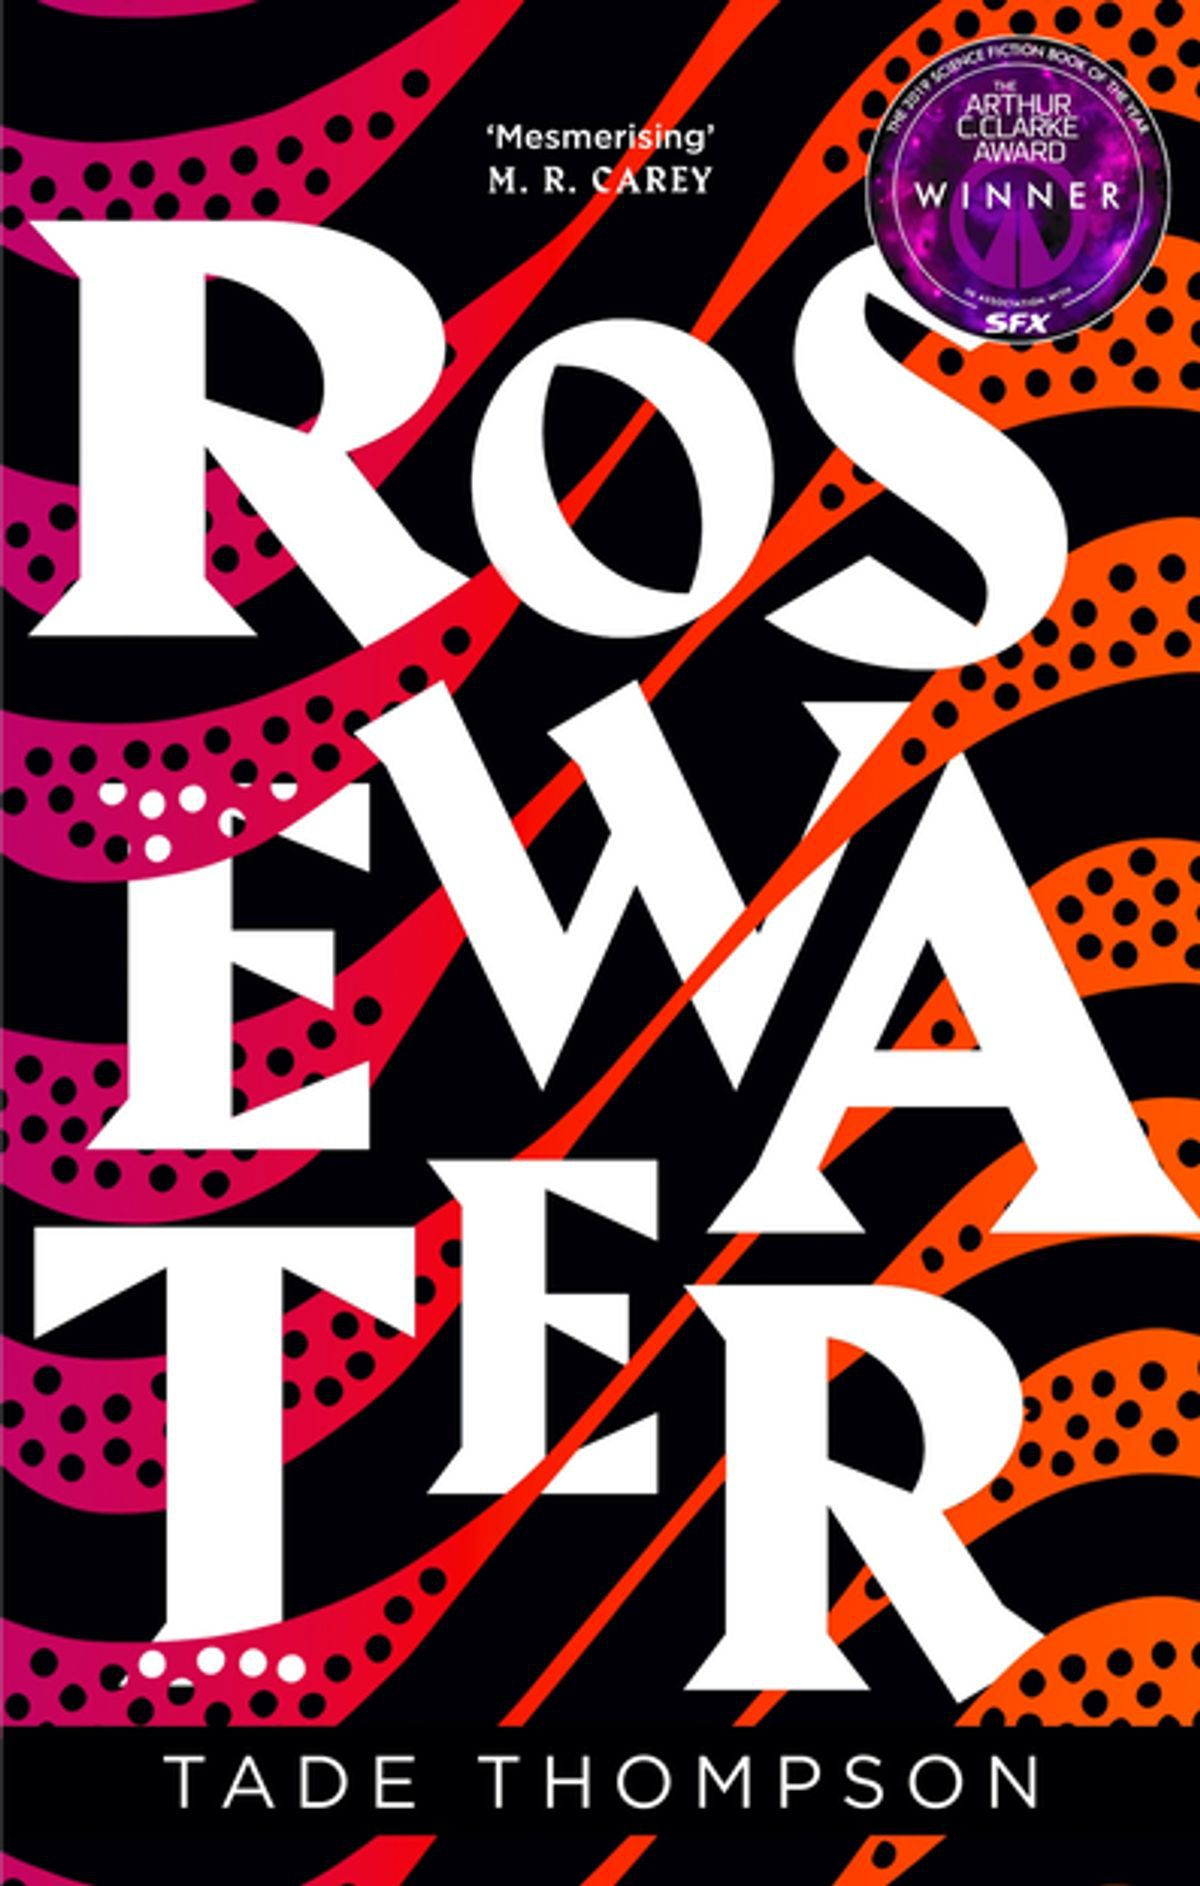 The cover of Tade Thompson's Rosewater